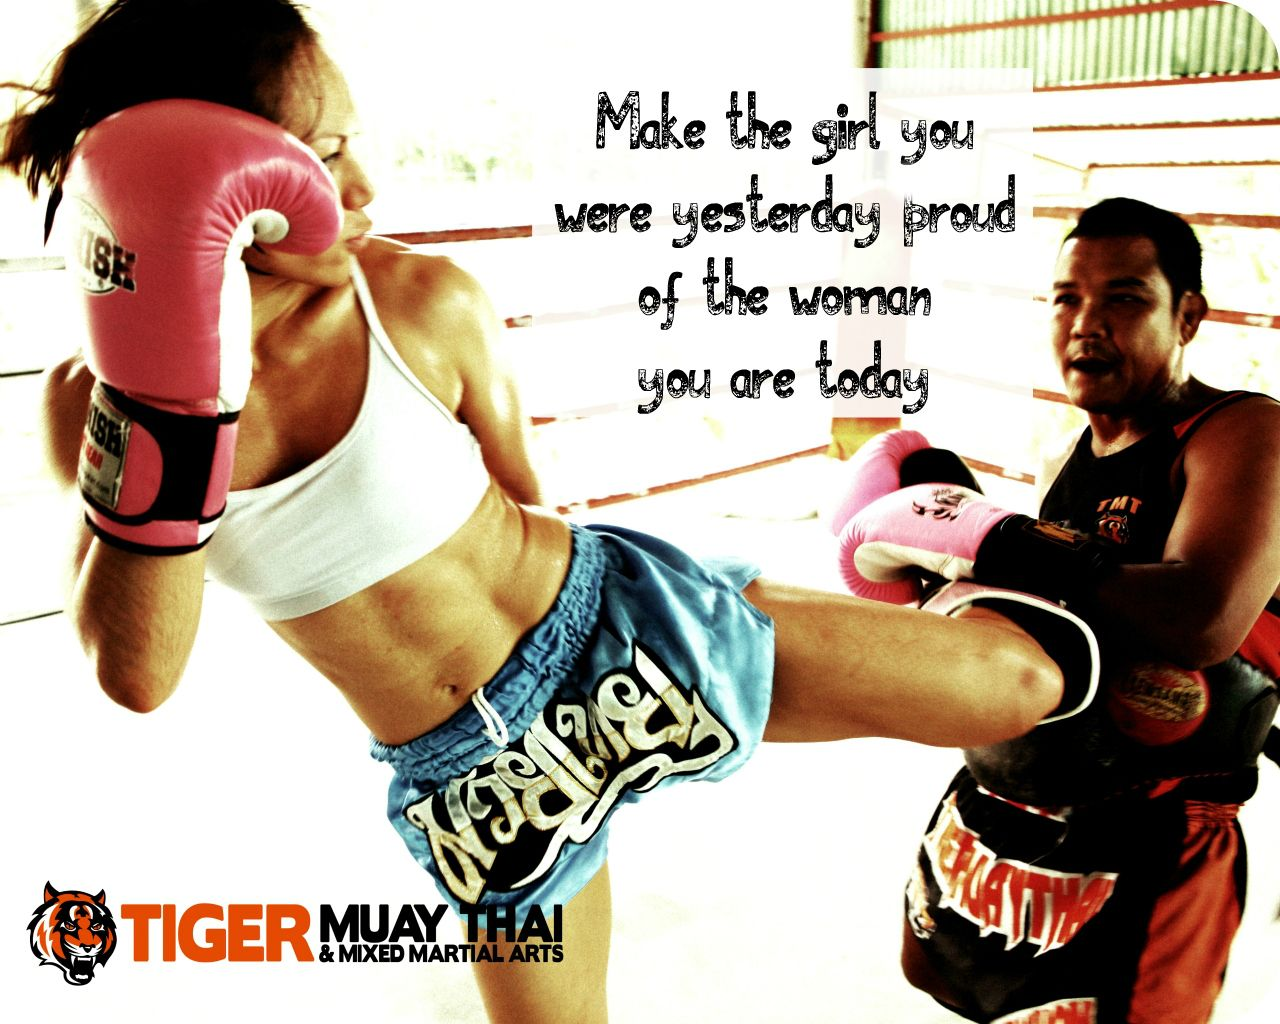 Living a life the little girl you were would be proud of? No? It's not too late...let Tiger Muay Thai & MMA. pump up your future with fear-crushing, adrenalin-pumping experiences! www.tigermuaythai.com